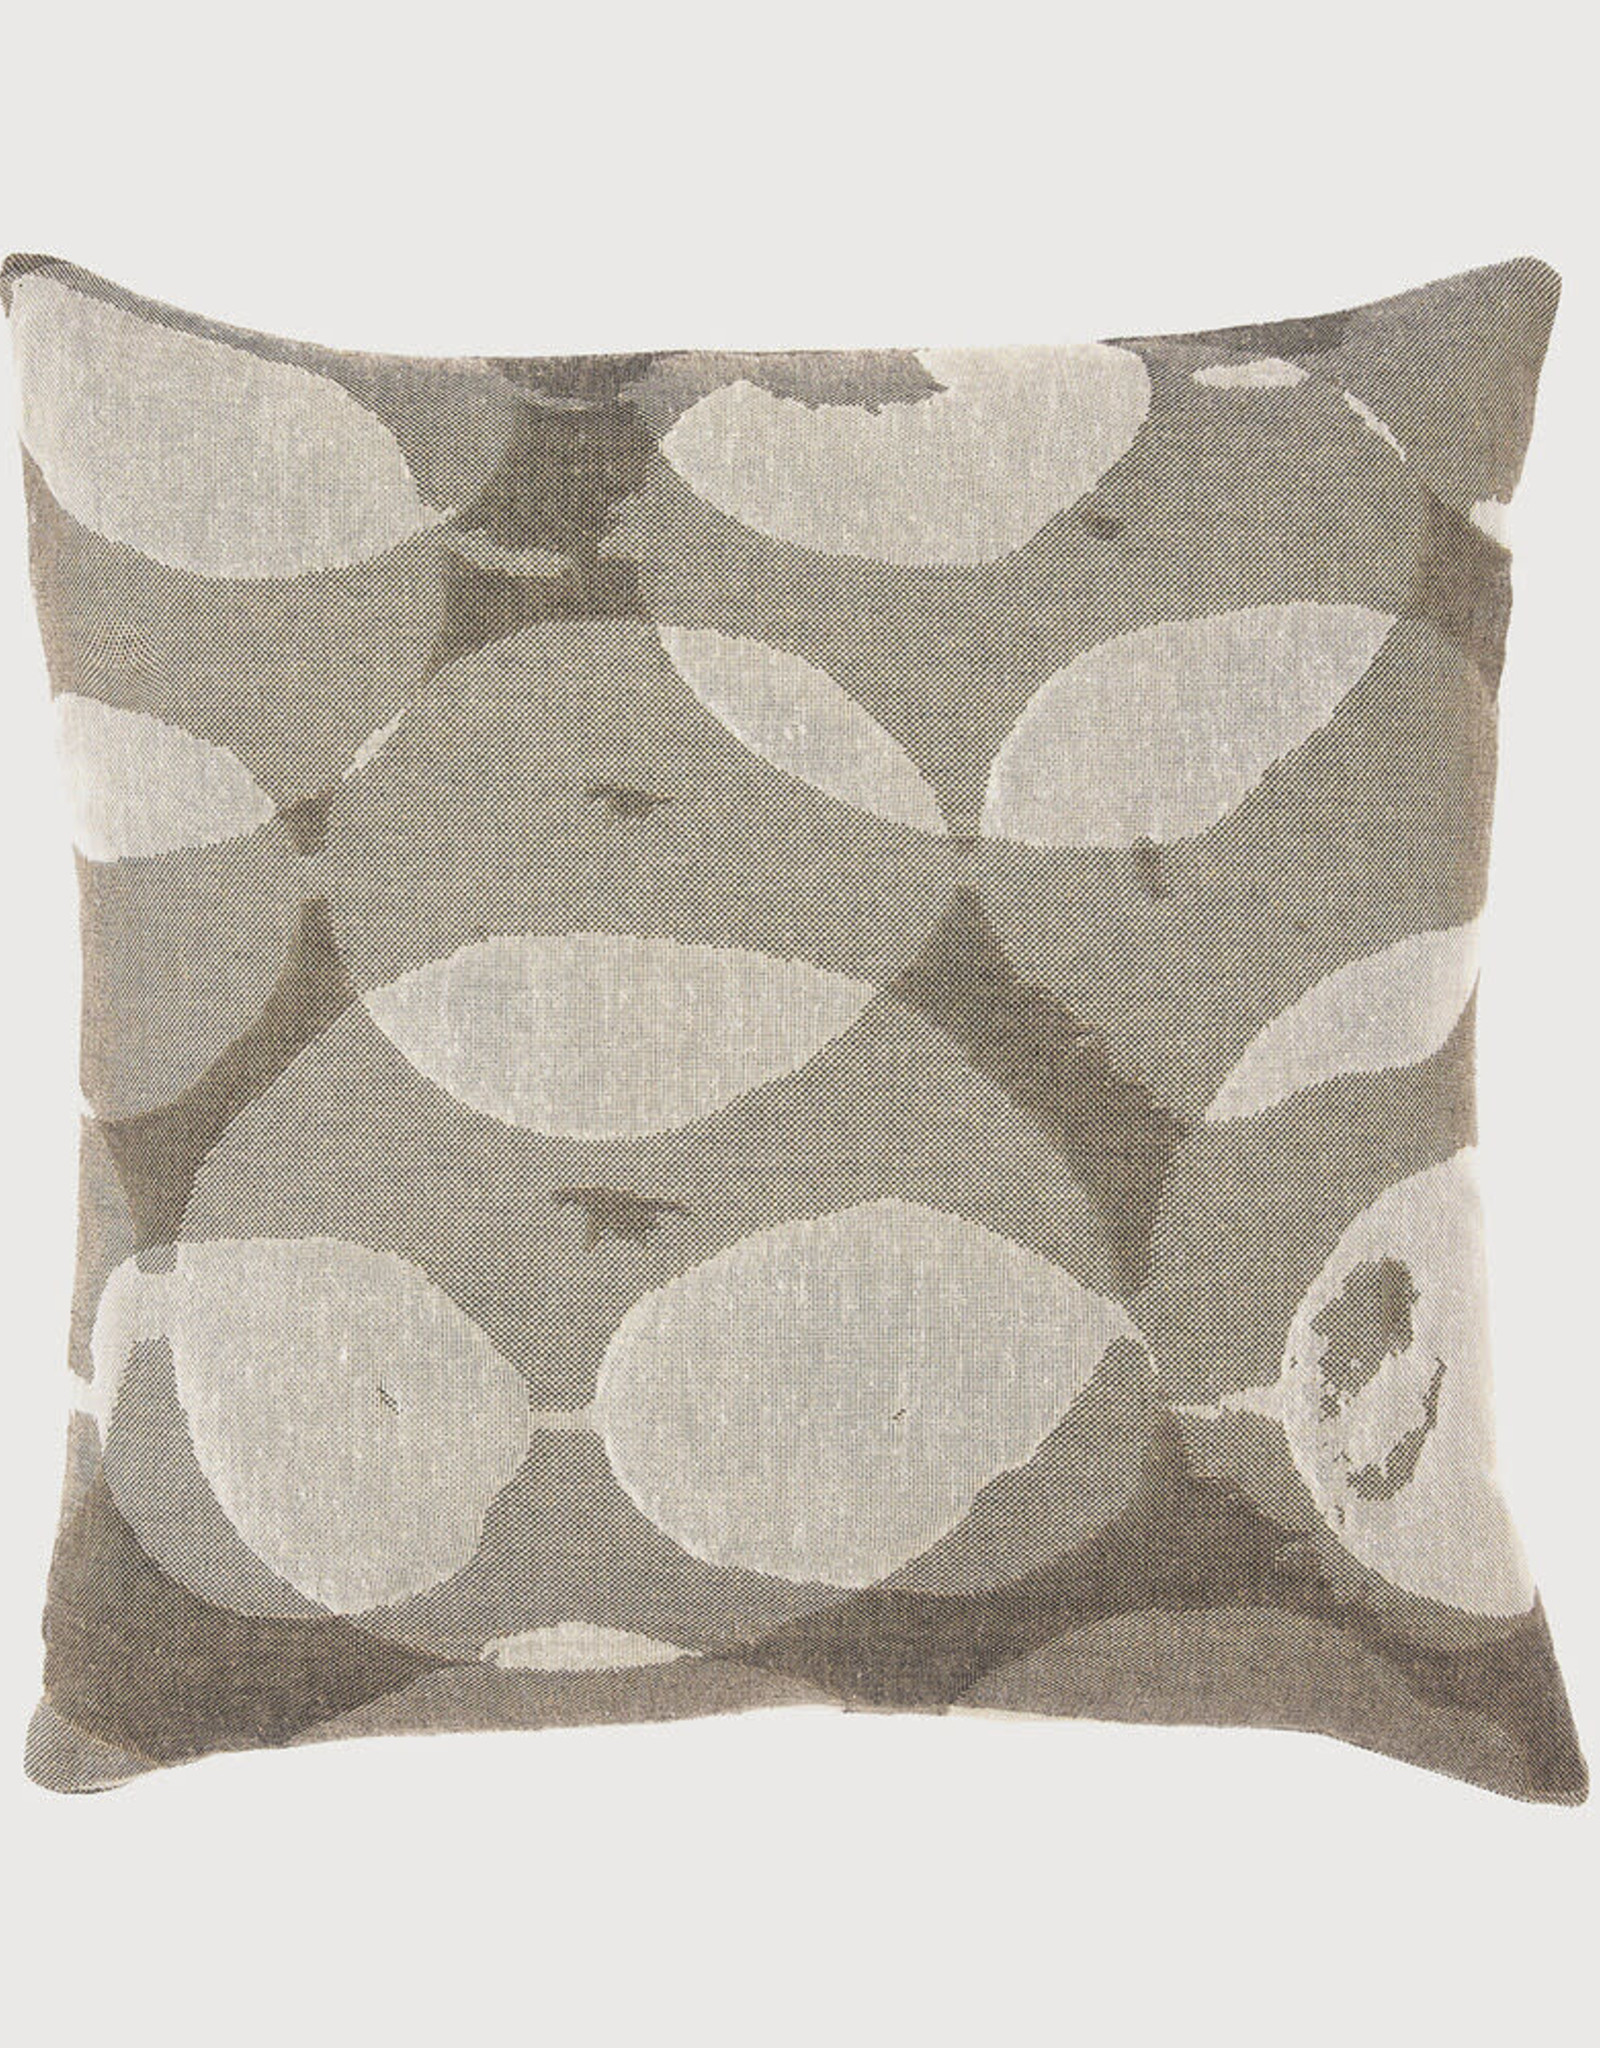 Connected Dots Square Cushion